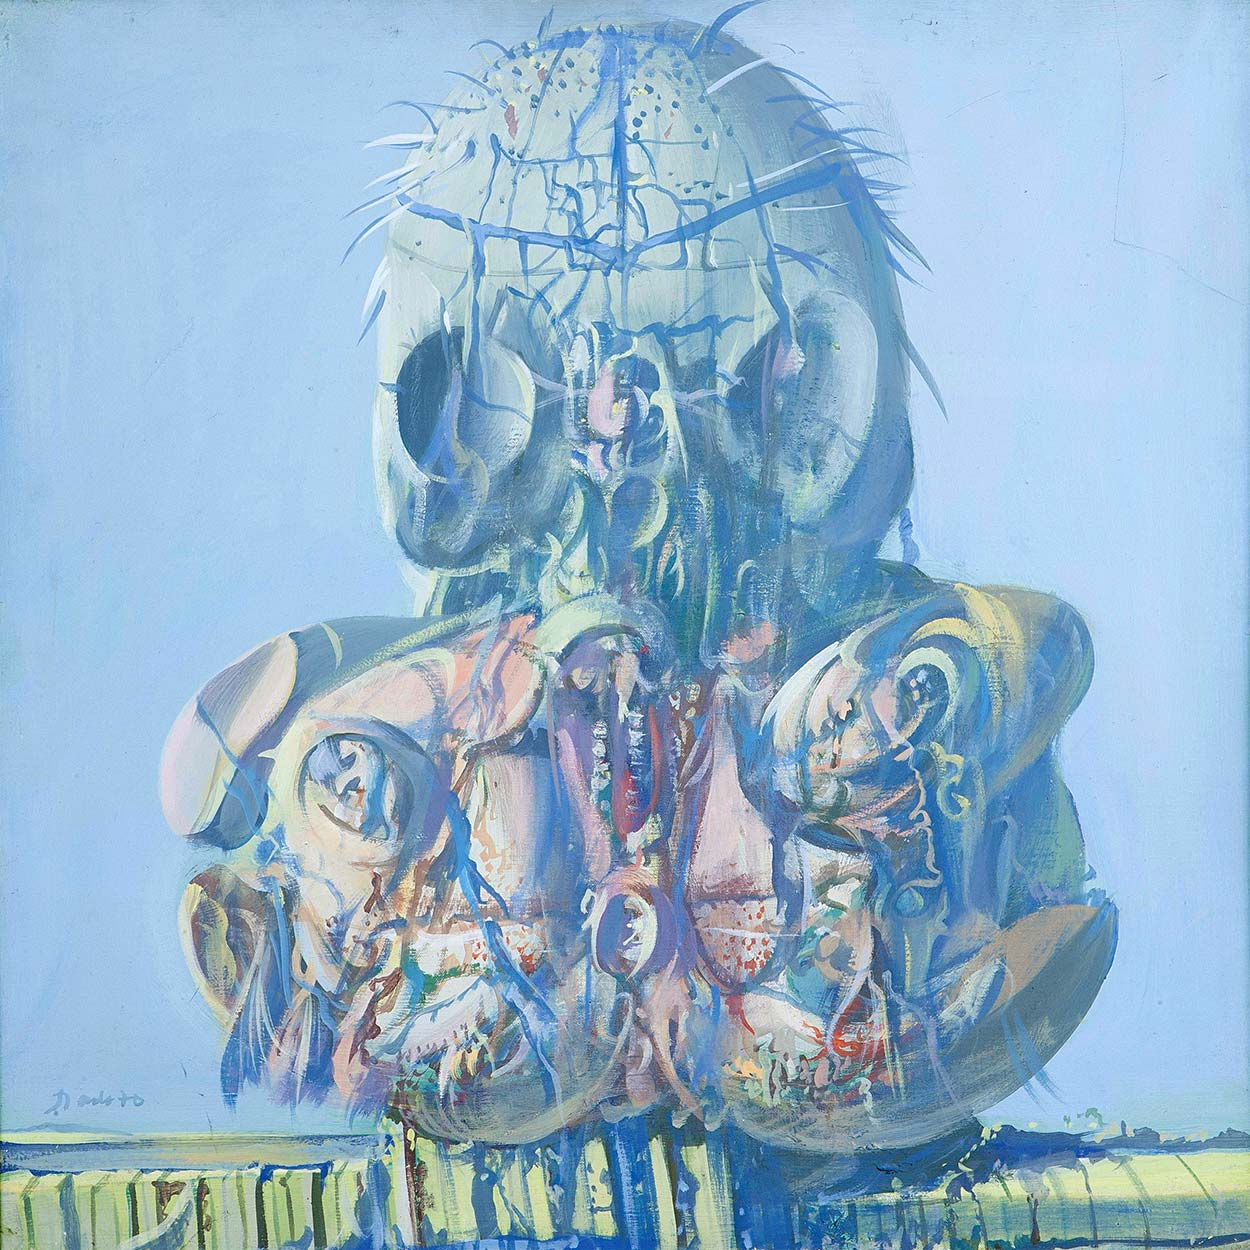 Dado's painting: The Gallery of Ancestors V, 1970